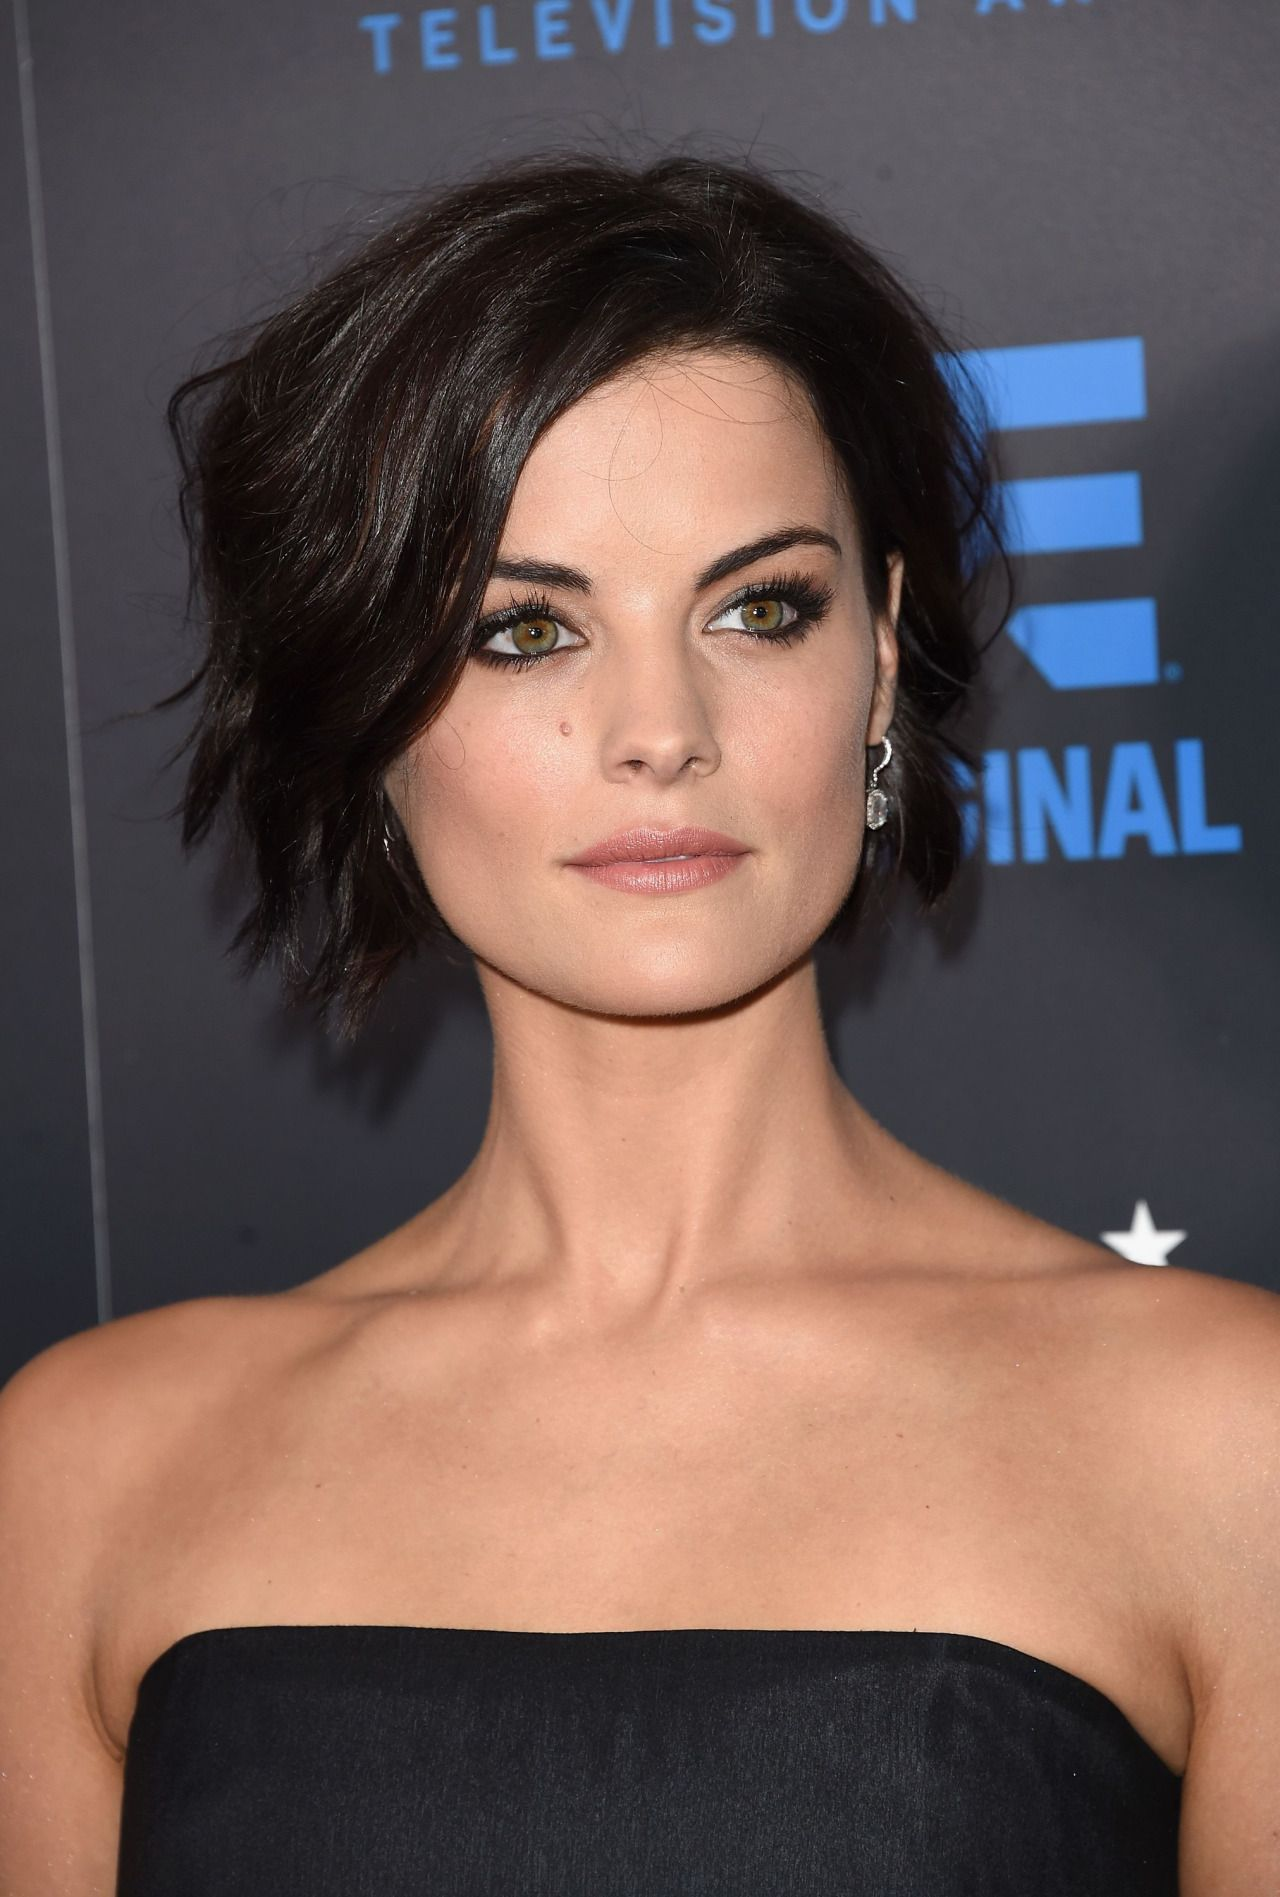 Jaimie Alexander nudes (81 pictures) Topless, YouTube, braless